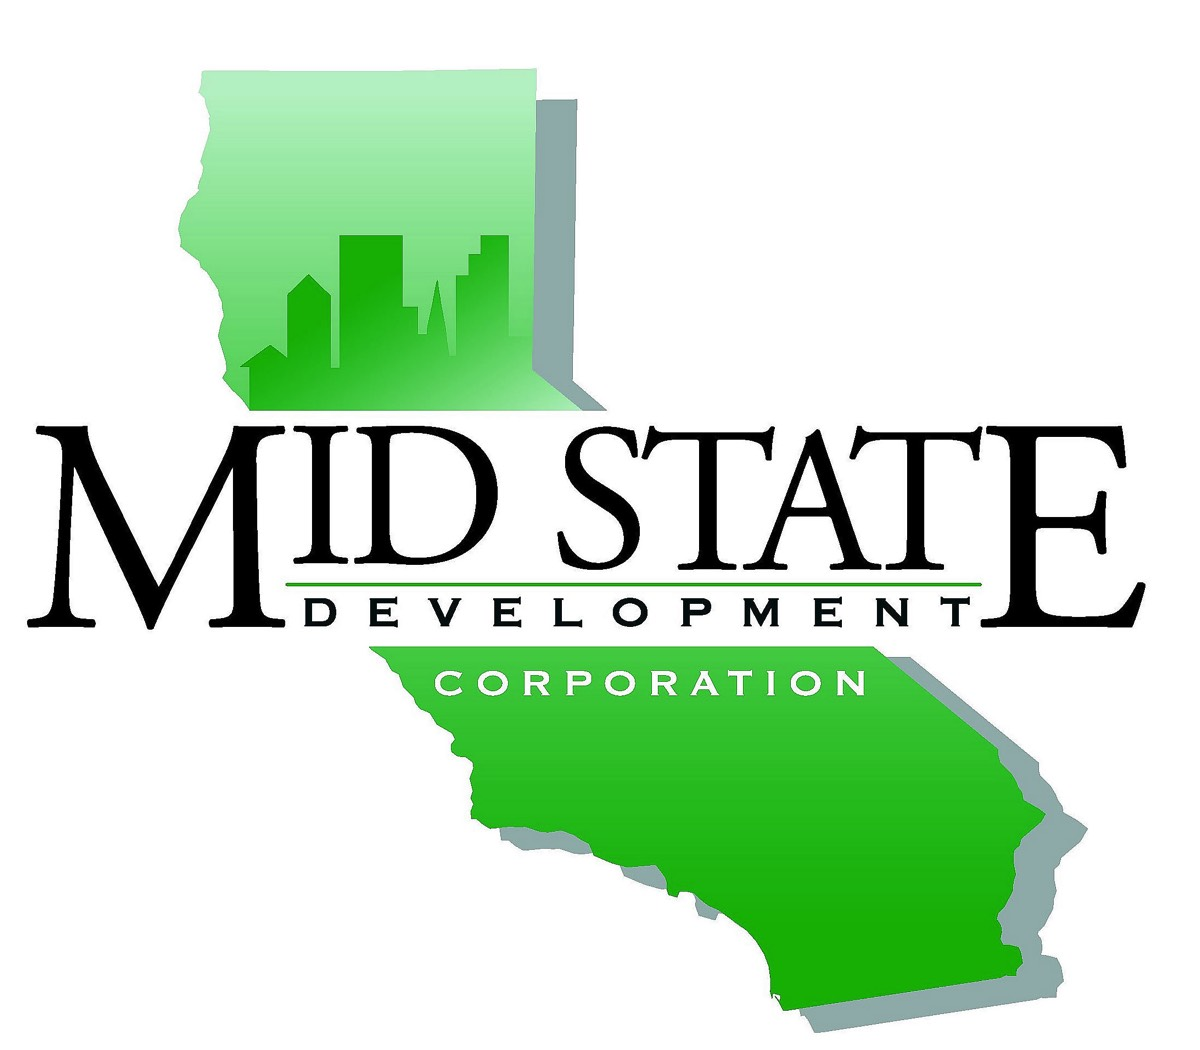 Mid State Development